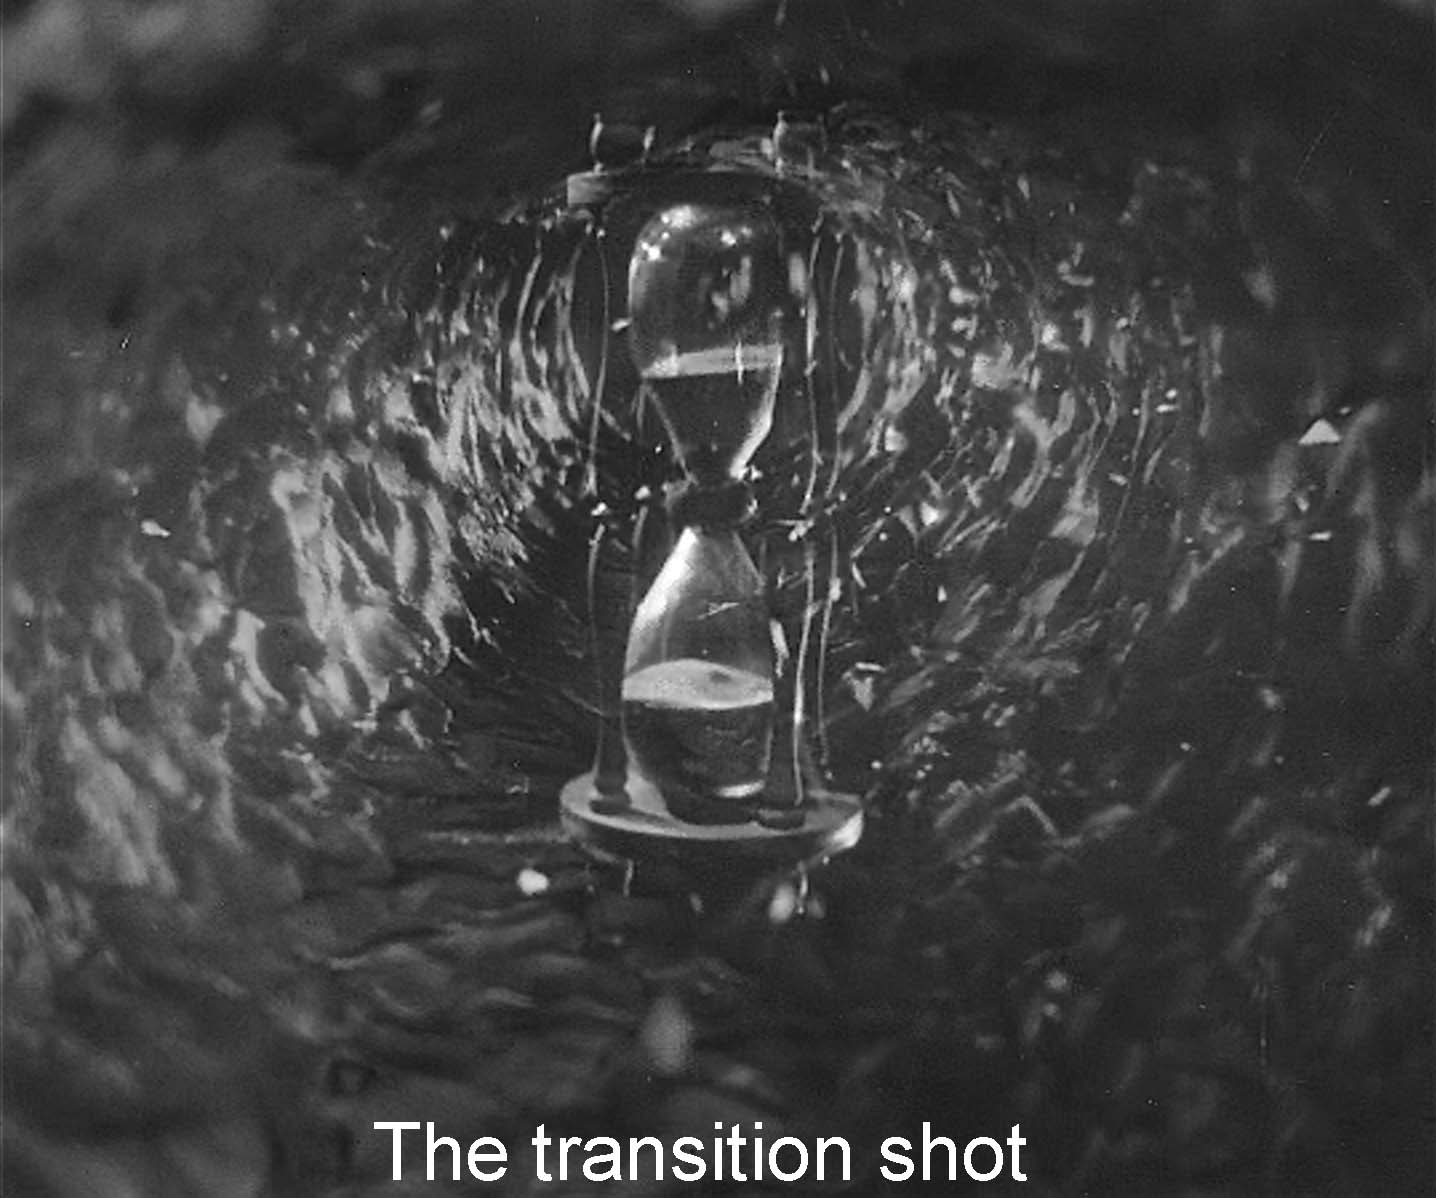 The transition shot